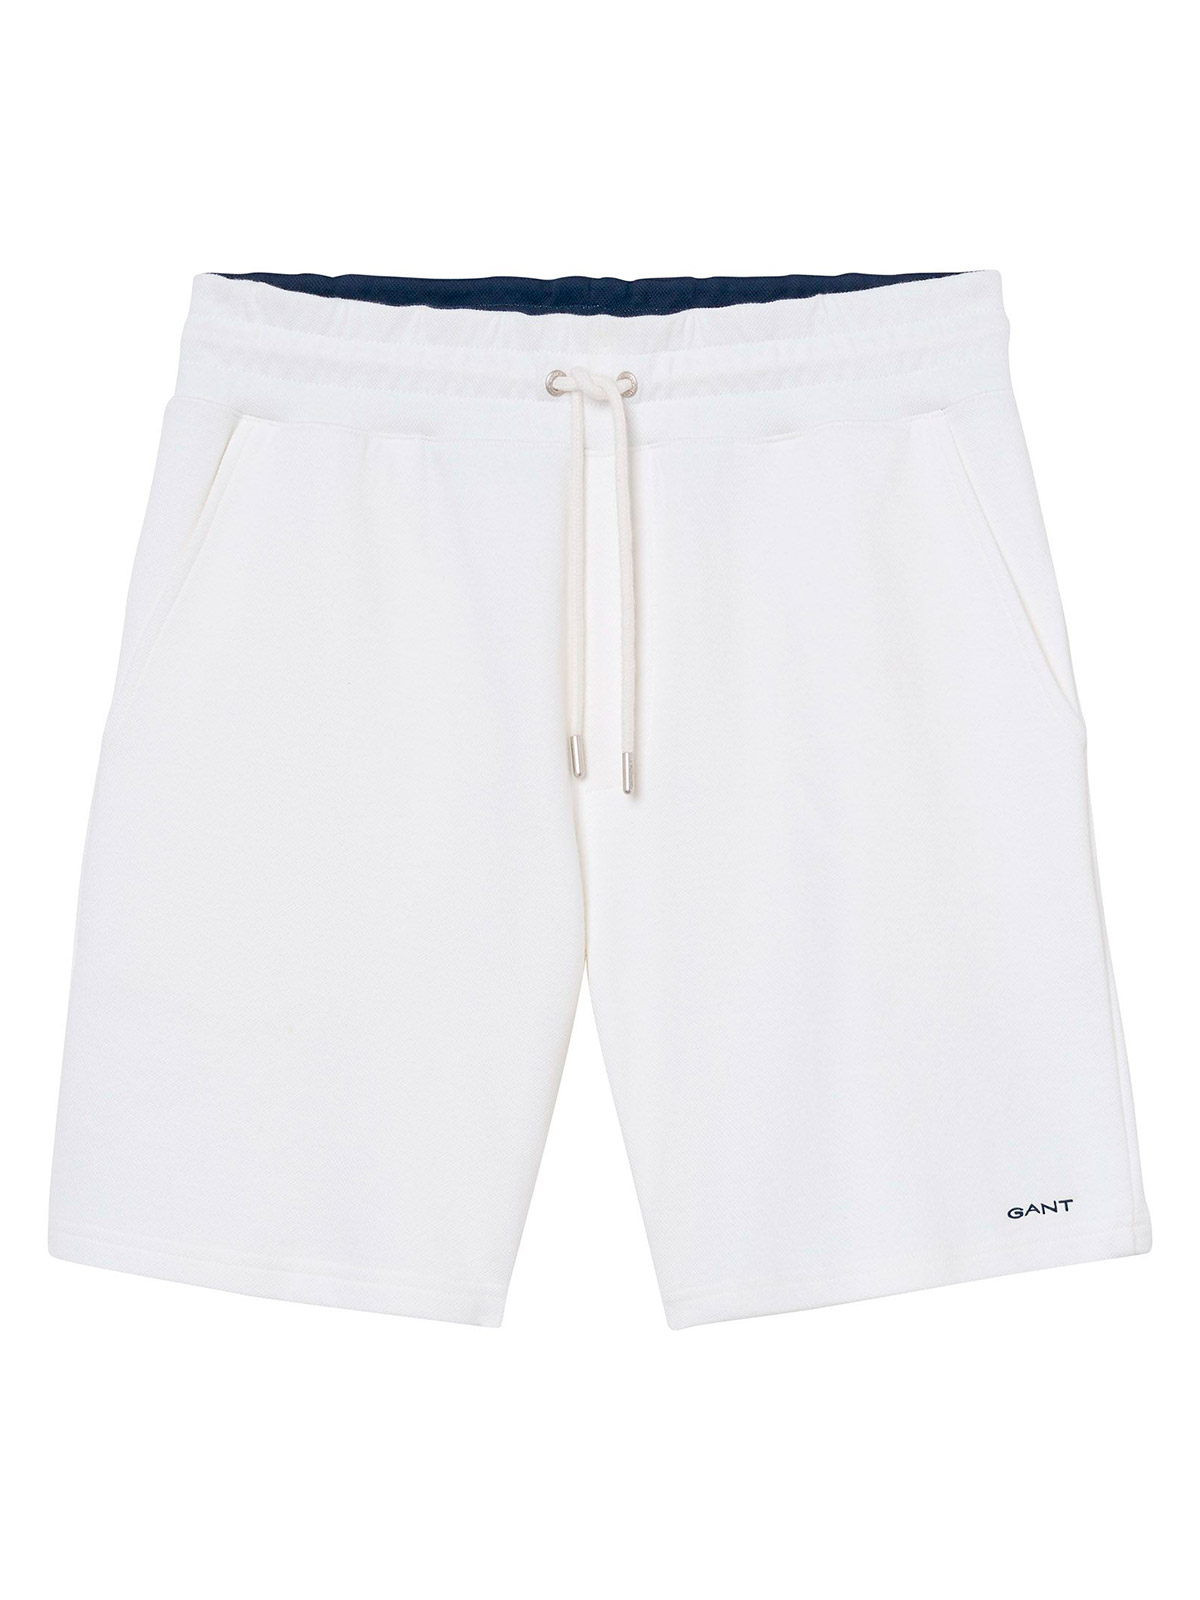 Picture of GANT | Men's Pique Sweat Shorts